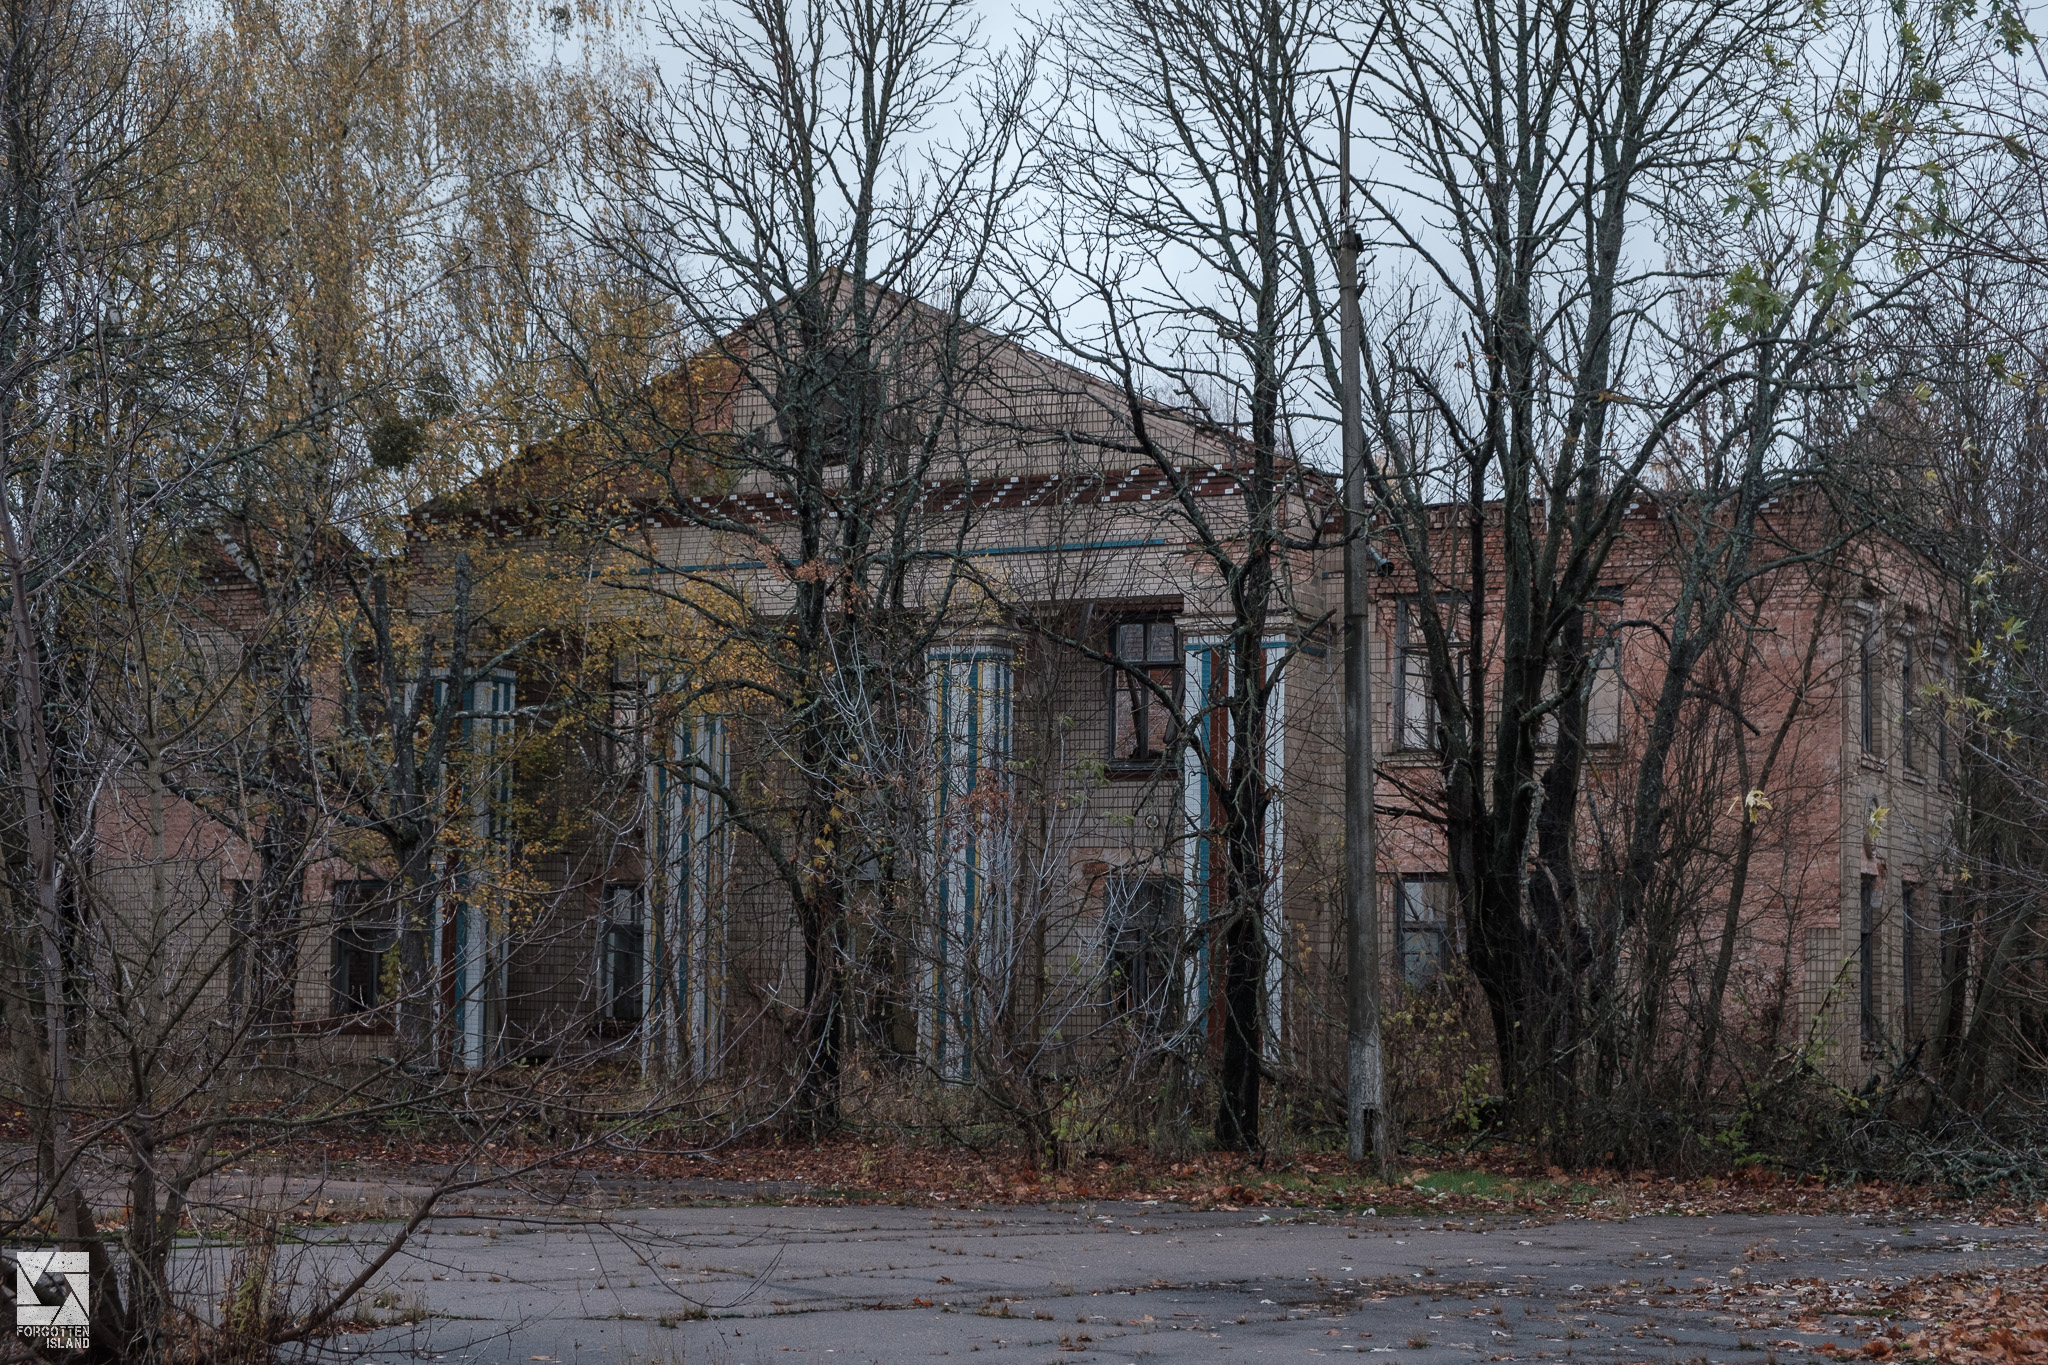 Poliske town in the Chernobyl Zone